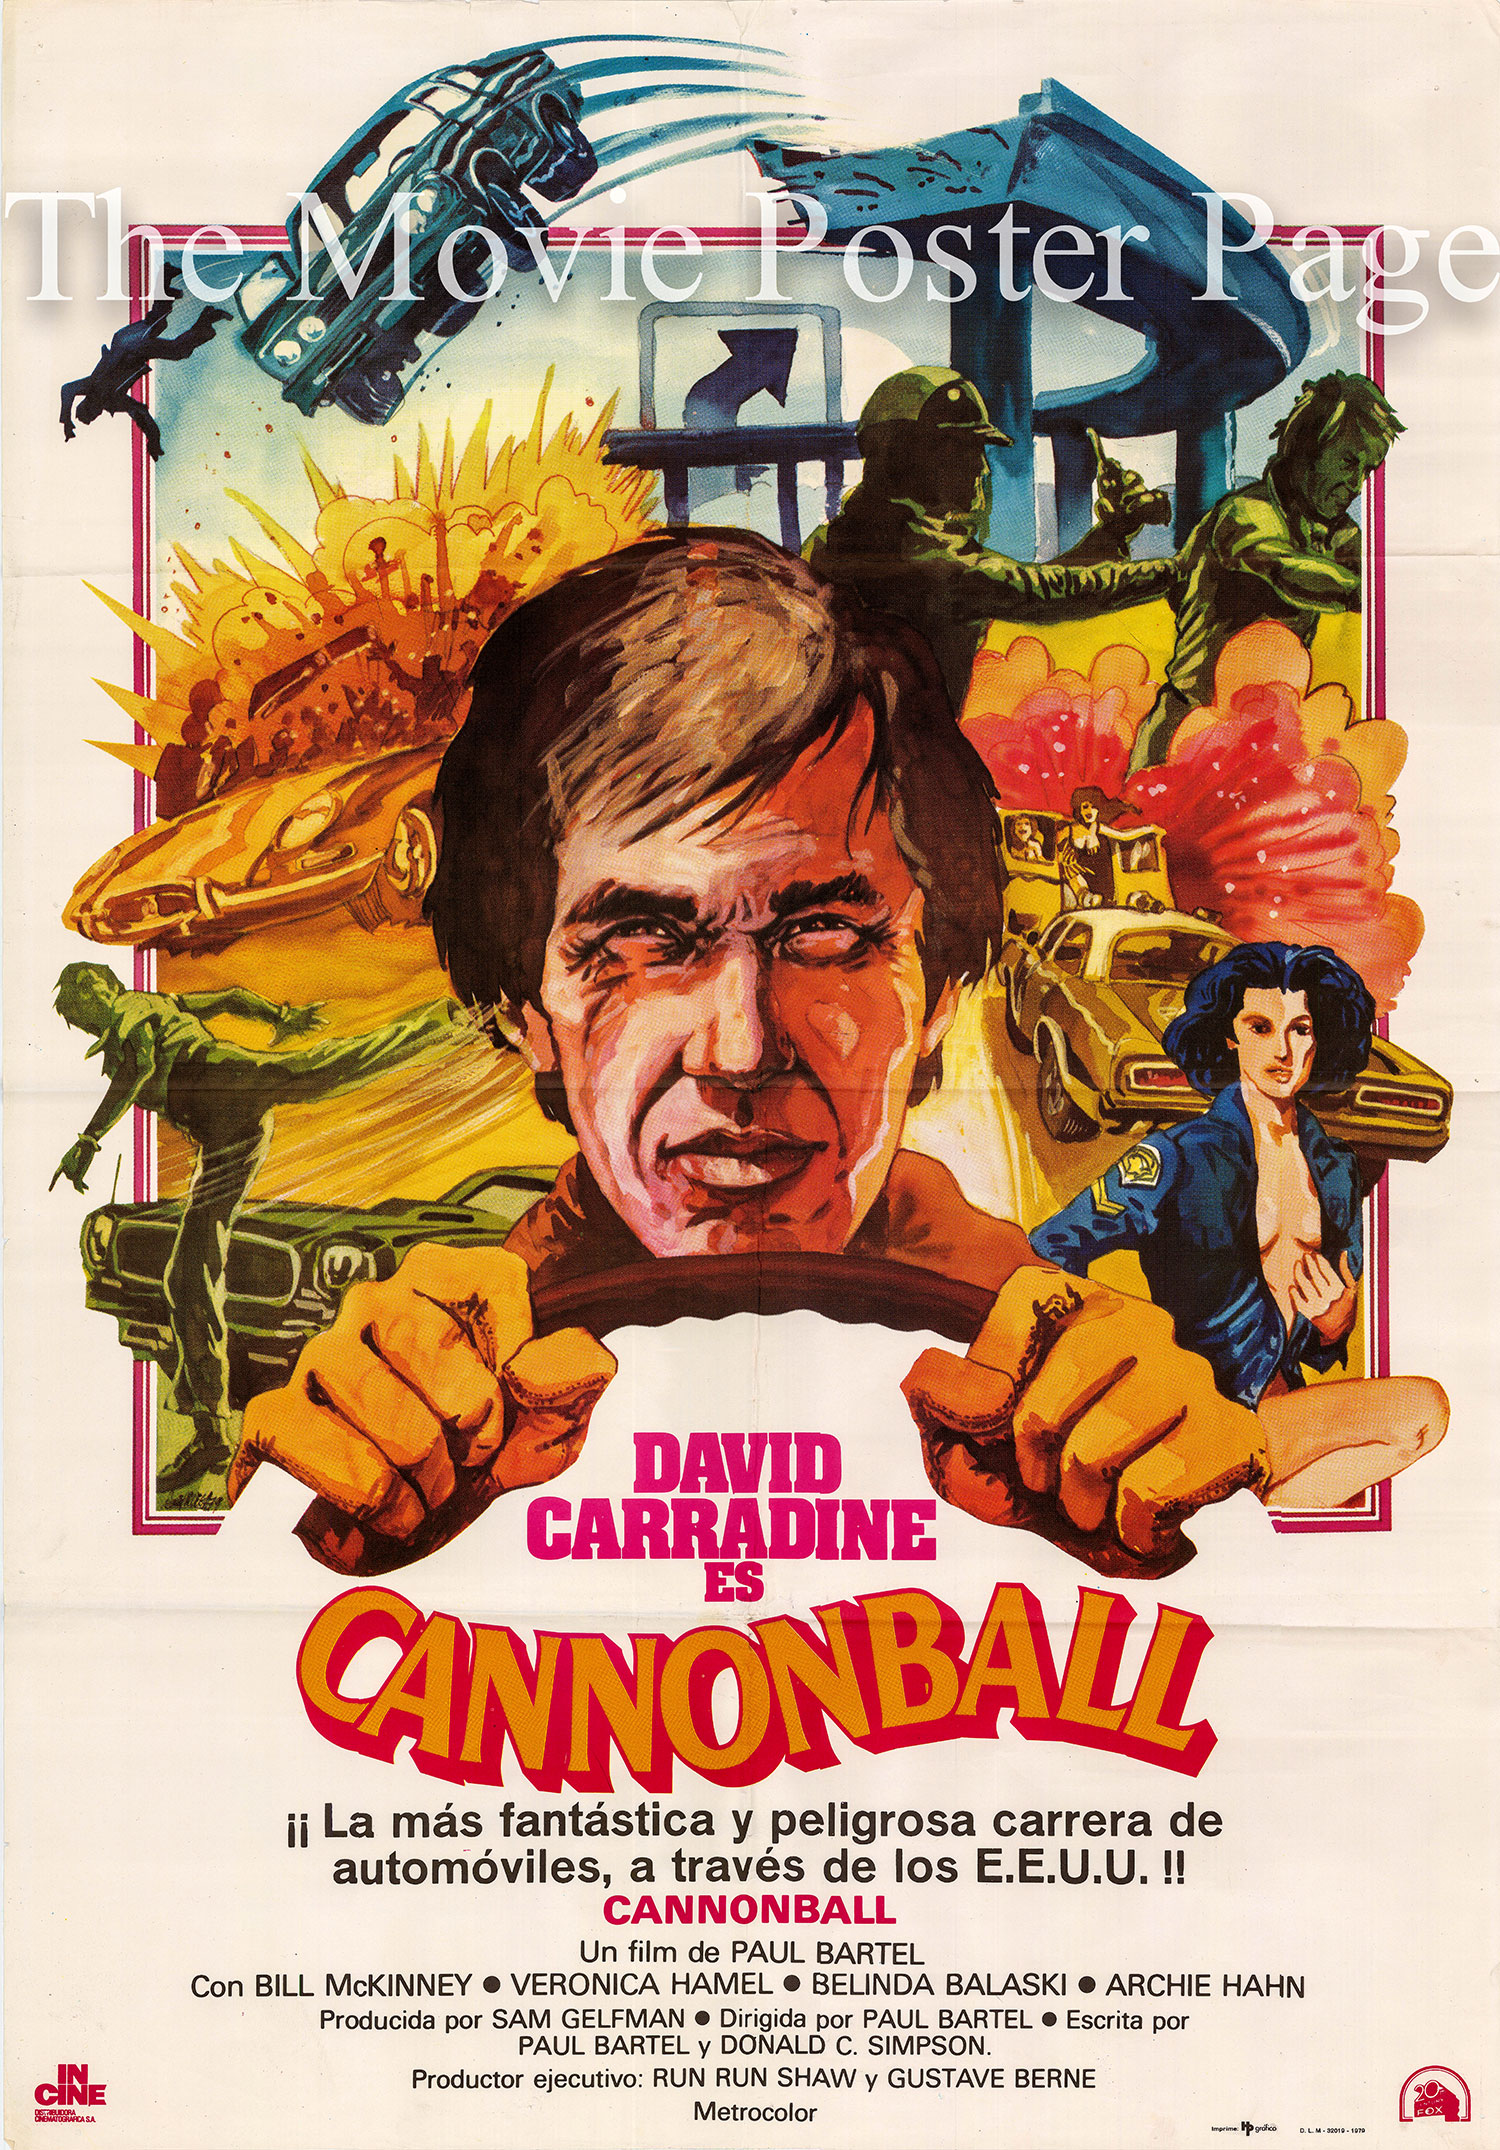 Pictured is a Spanish one-sheet poster for a 1979 rerelease of the 1976 Paul Bartel film Cannonball starring David Carradine.